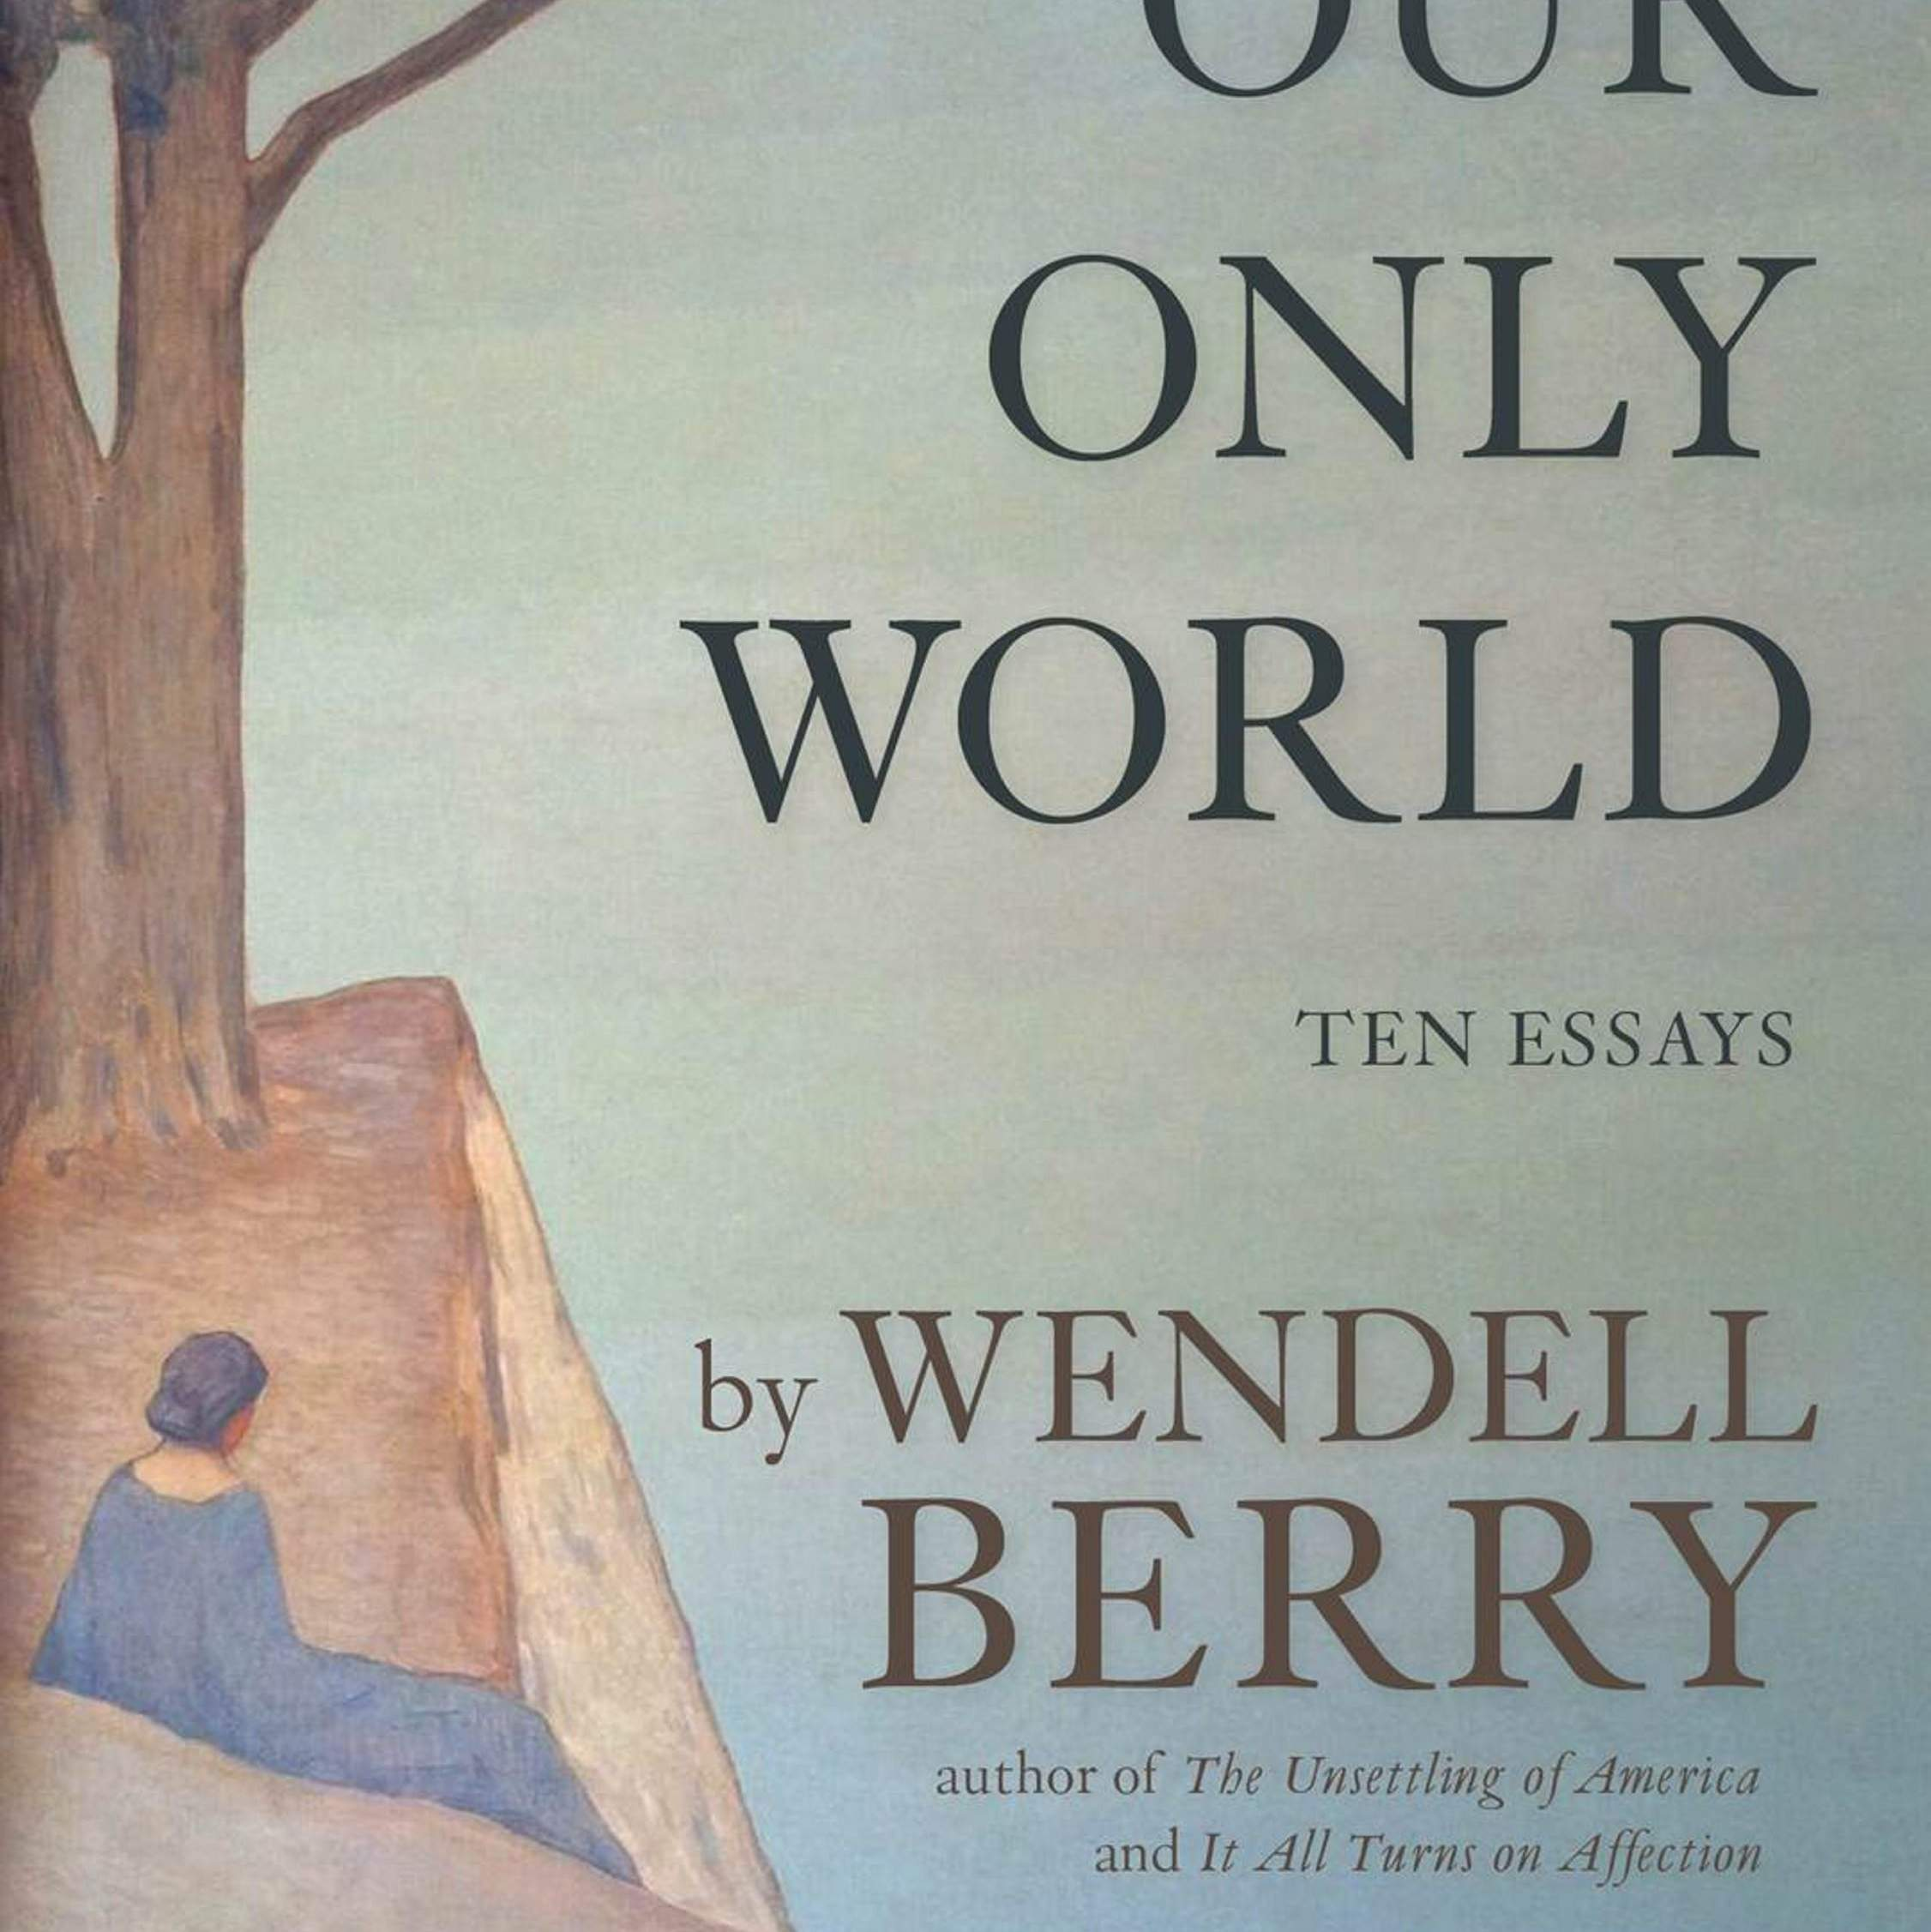 wendell berry way of ignorance essay The art of the commonplace the agrarian essays of wendell berry  the way of ignorance  ↑ berry, wendell.